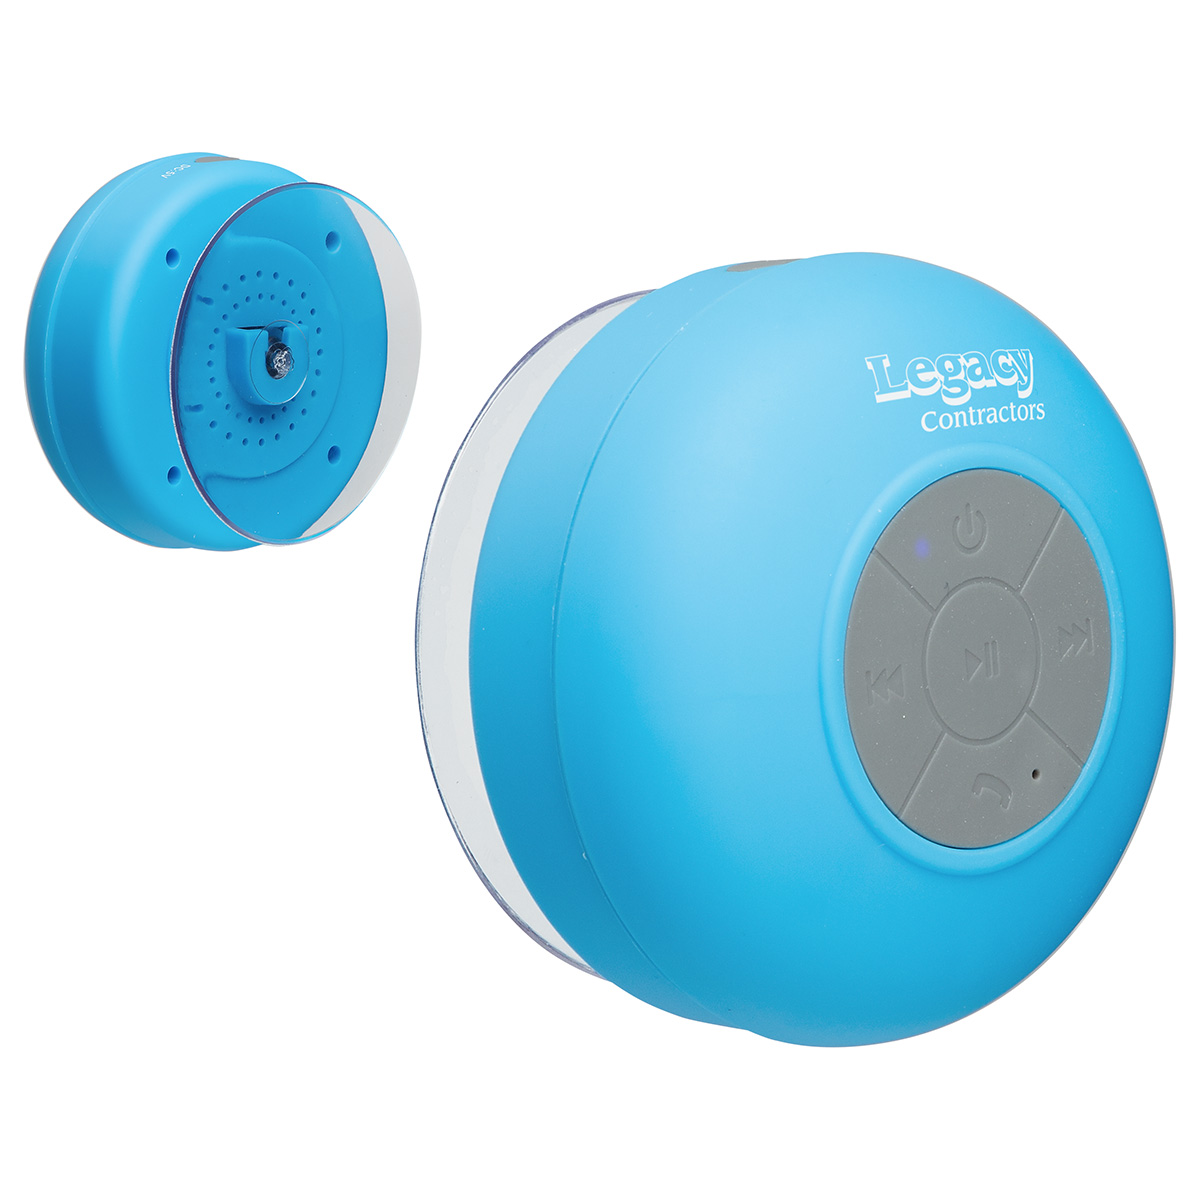 Water Resistant Wireless Speaker, WSP-WR15 - 1 Colour Imprint